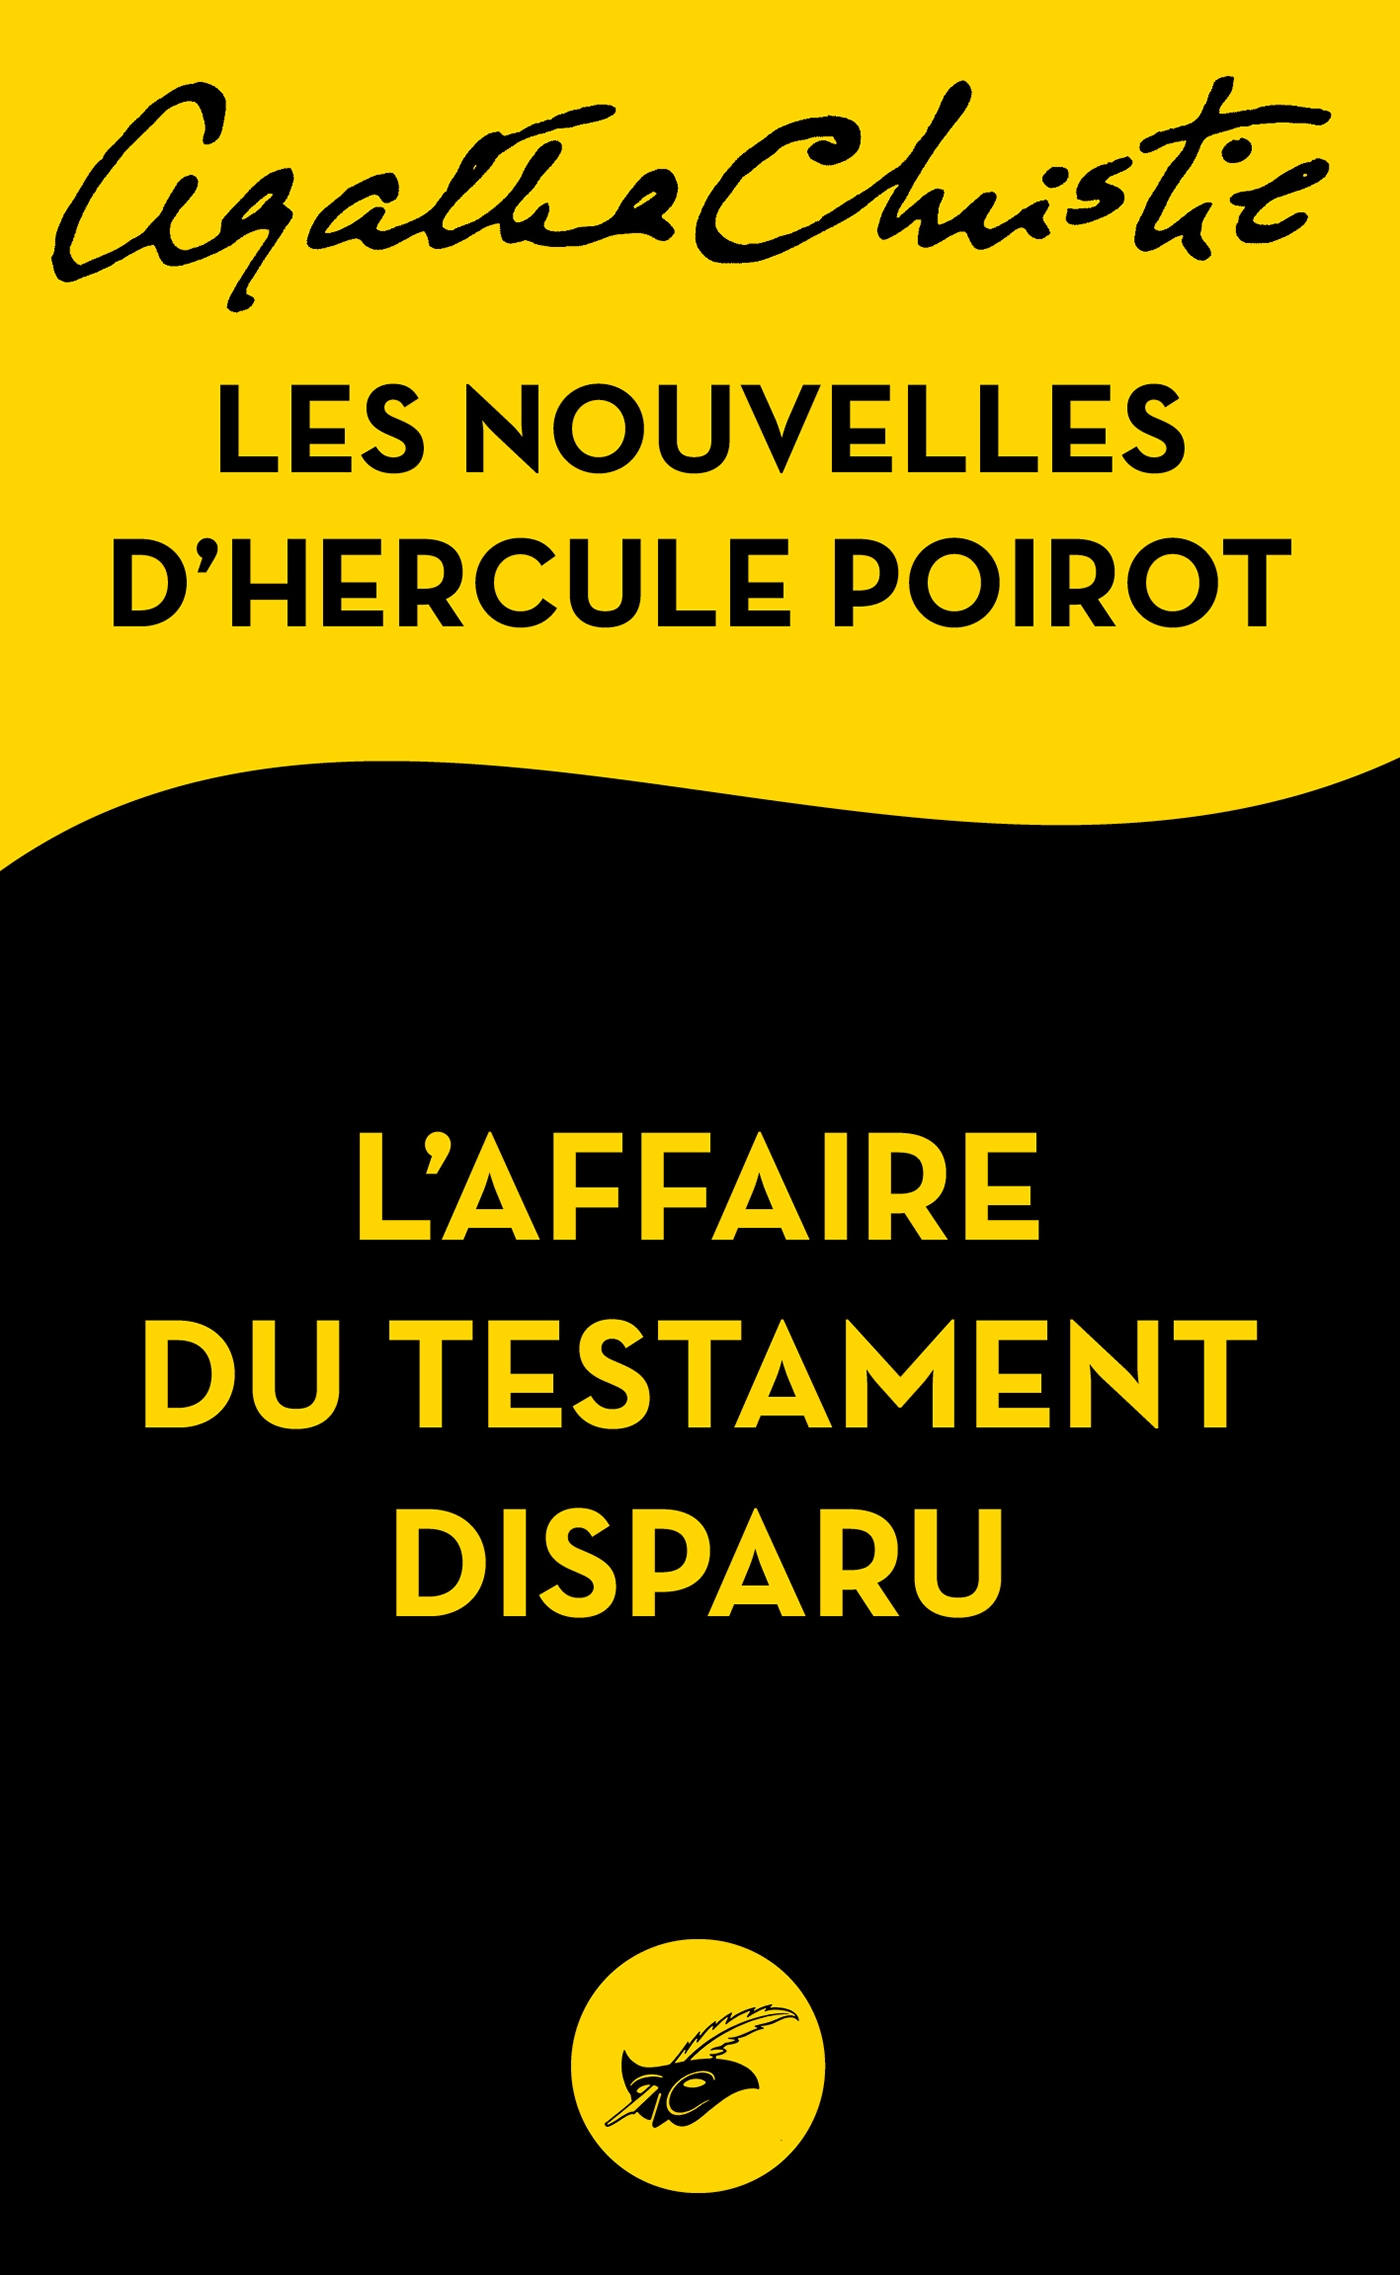 L'Affaire du testament disparu